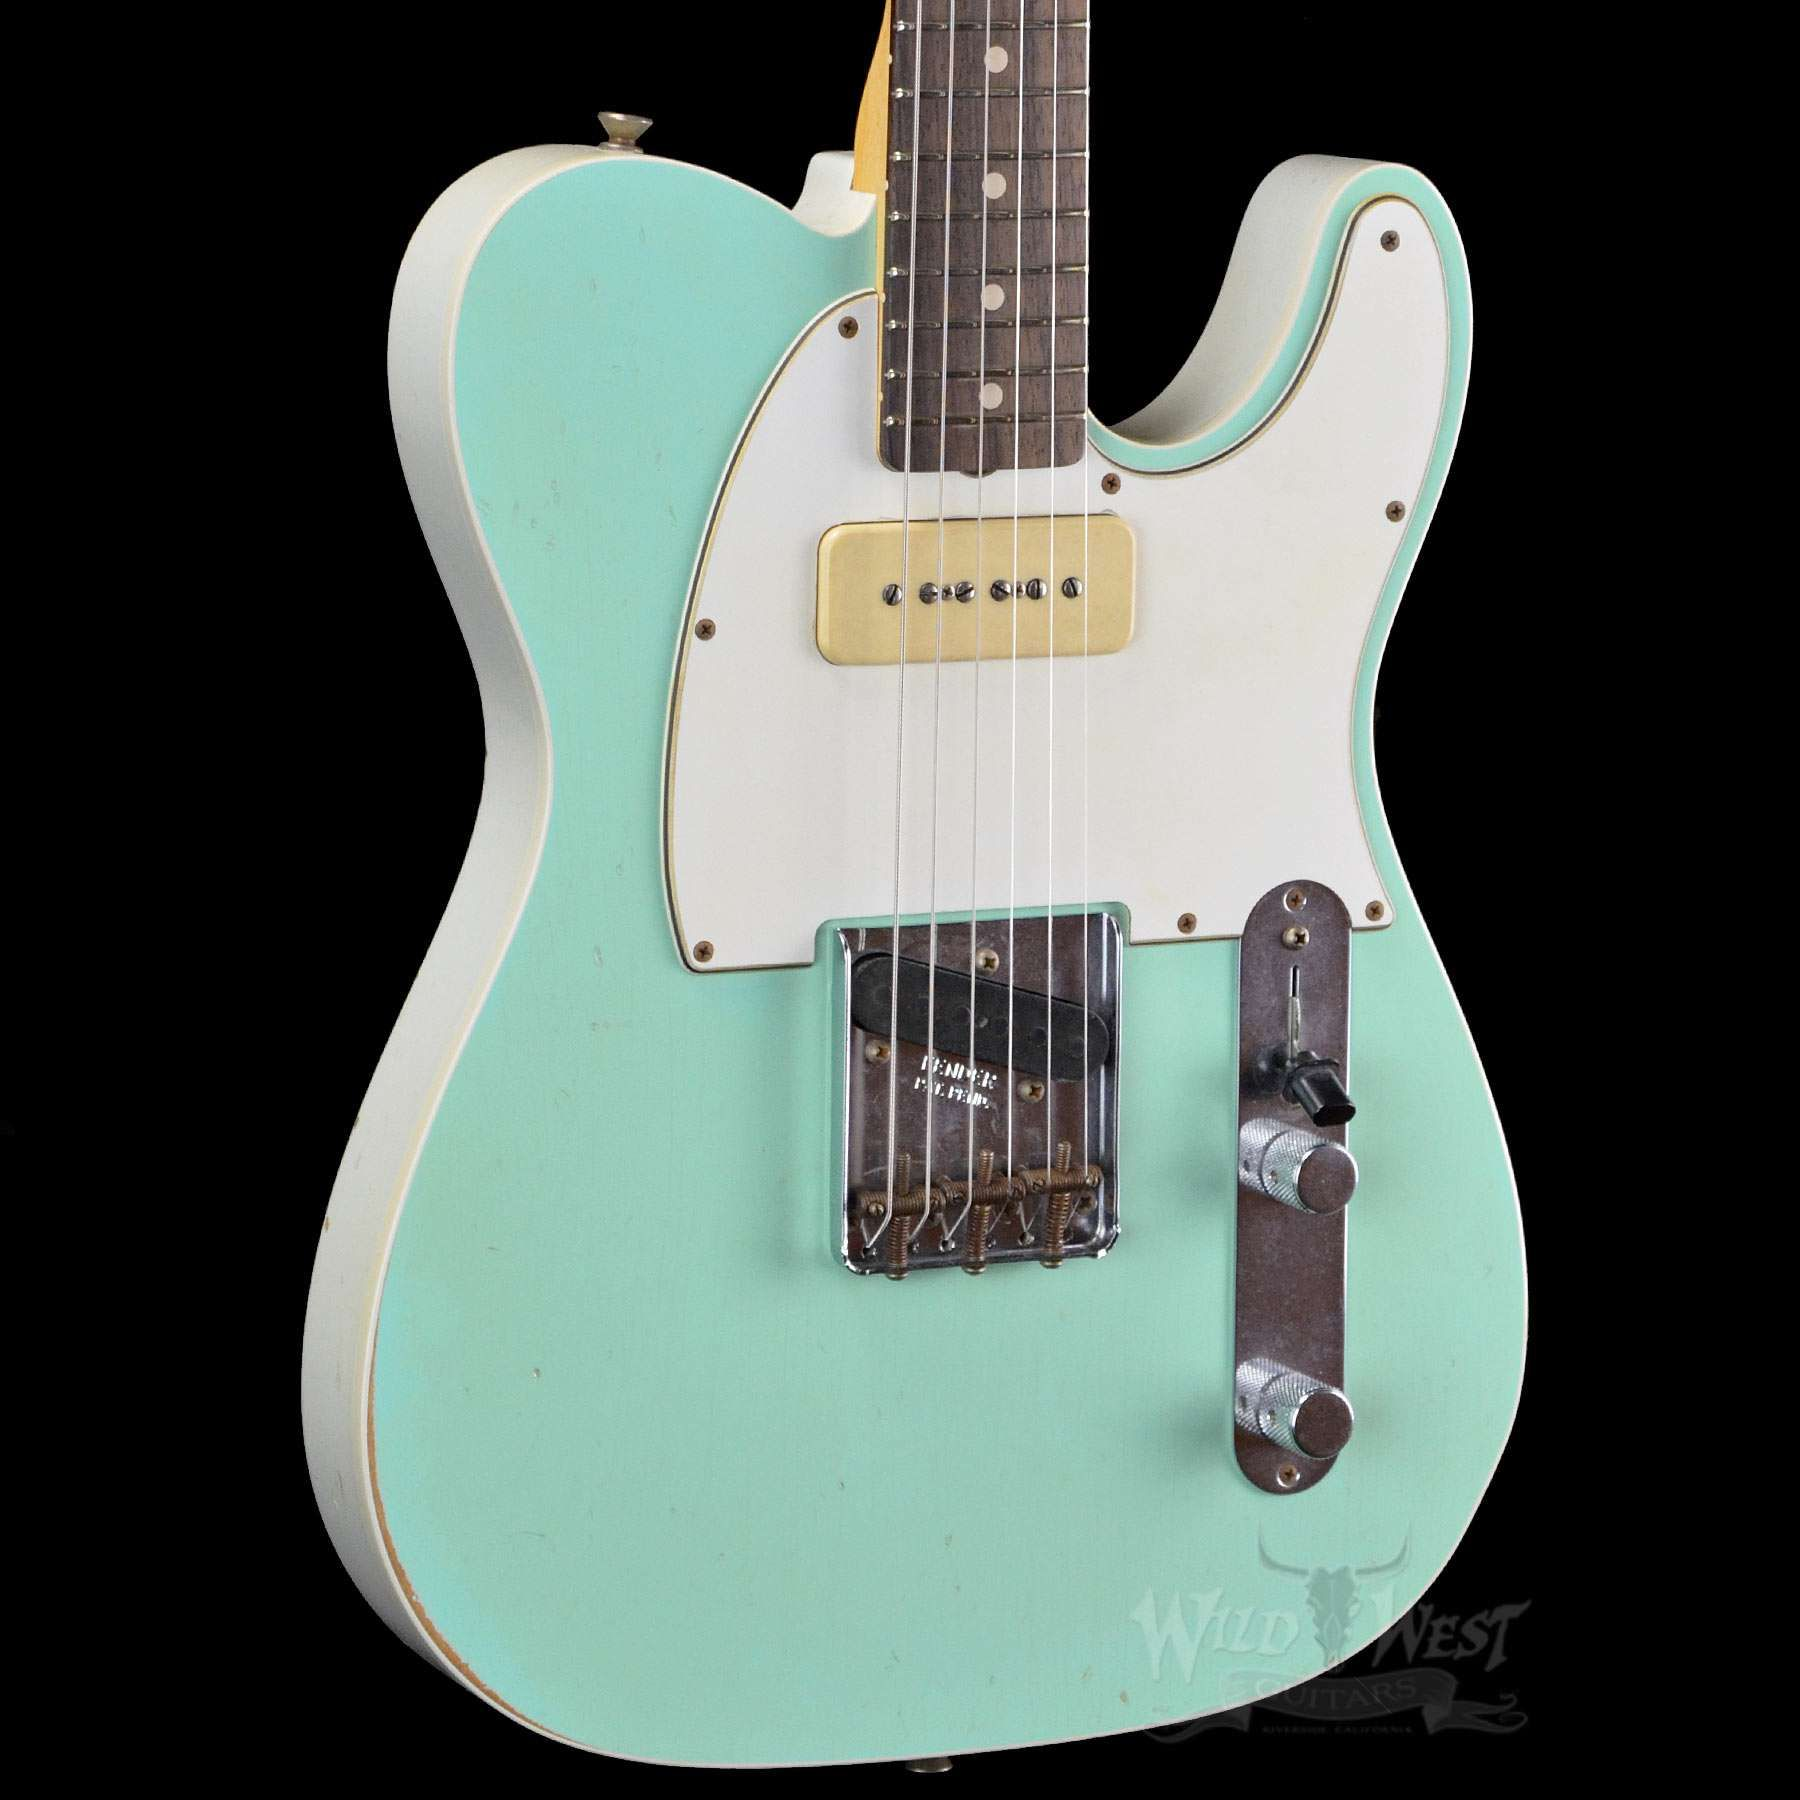 Fender 1963 Custom P90 Relic Telecaster Faded Surf Green Olympic White Back Preowned Telecaster Fender Telecaster Guitar